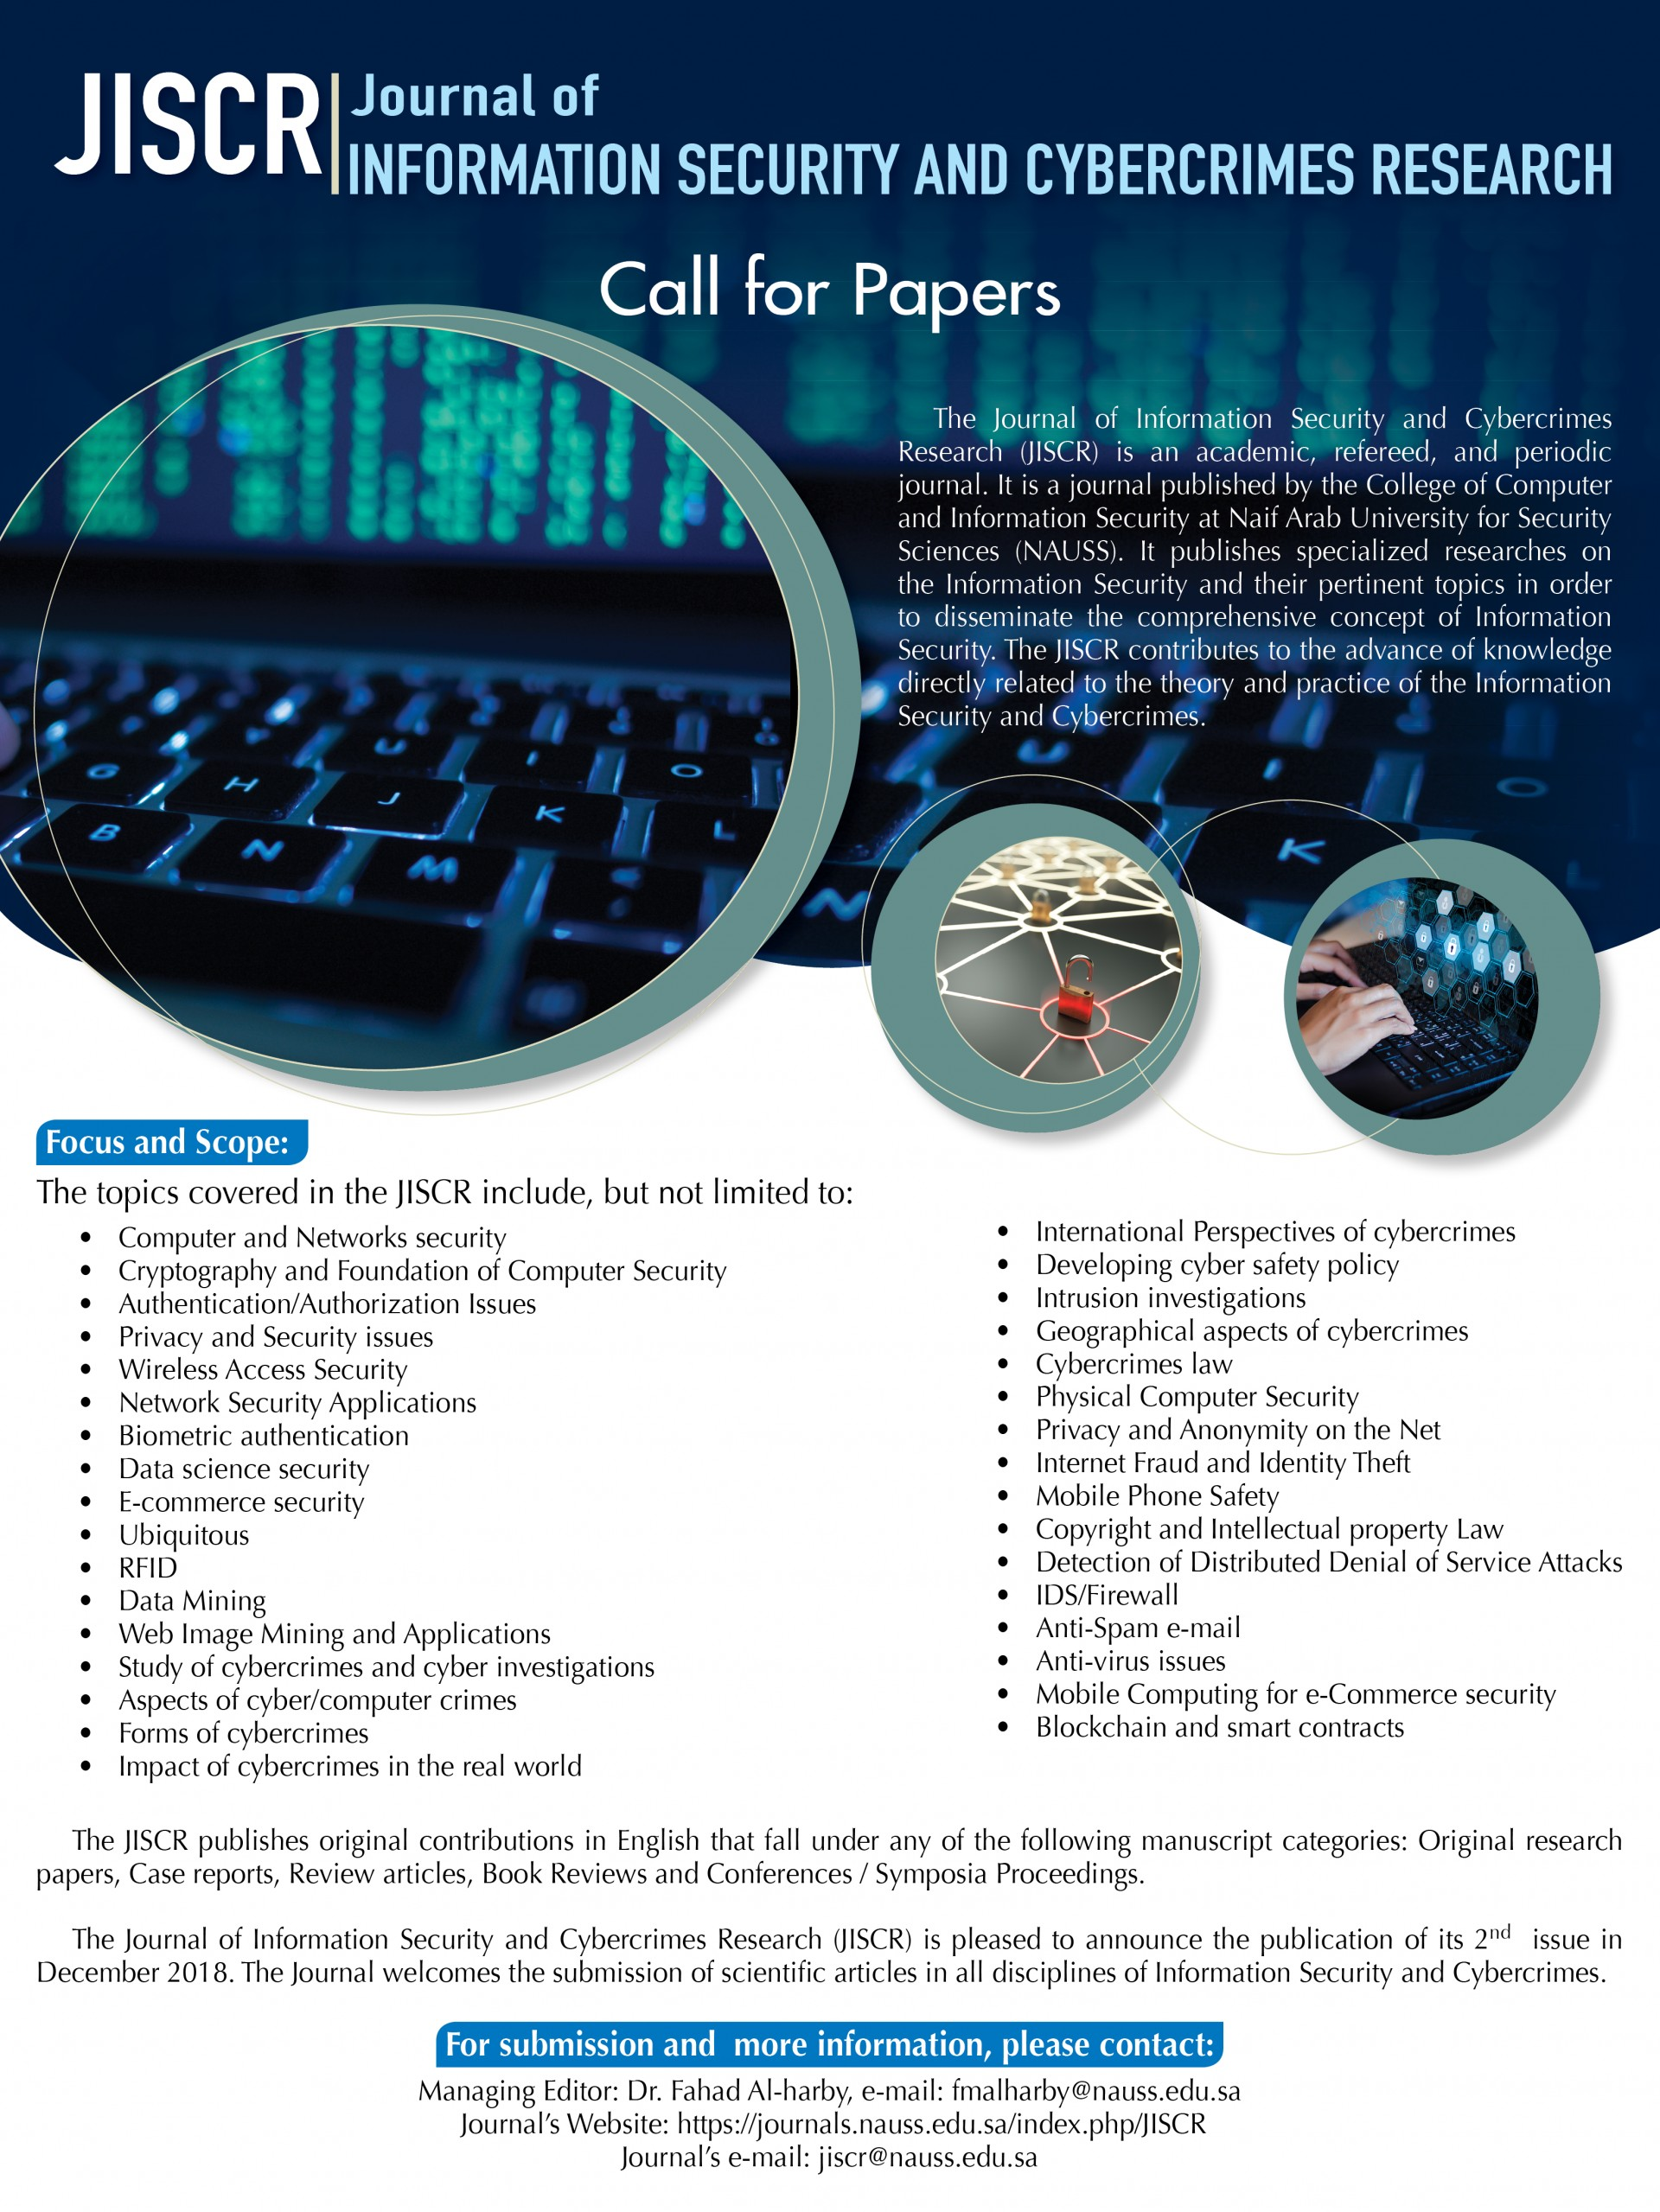 020 Research Paper Papers On Cyber Security Call For December Wonderful In E Commerce Topics Pdf 1920